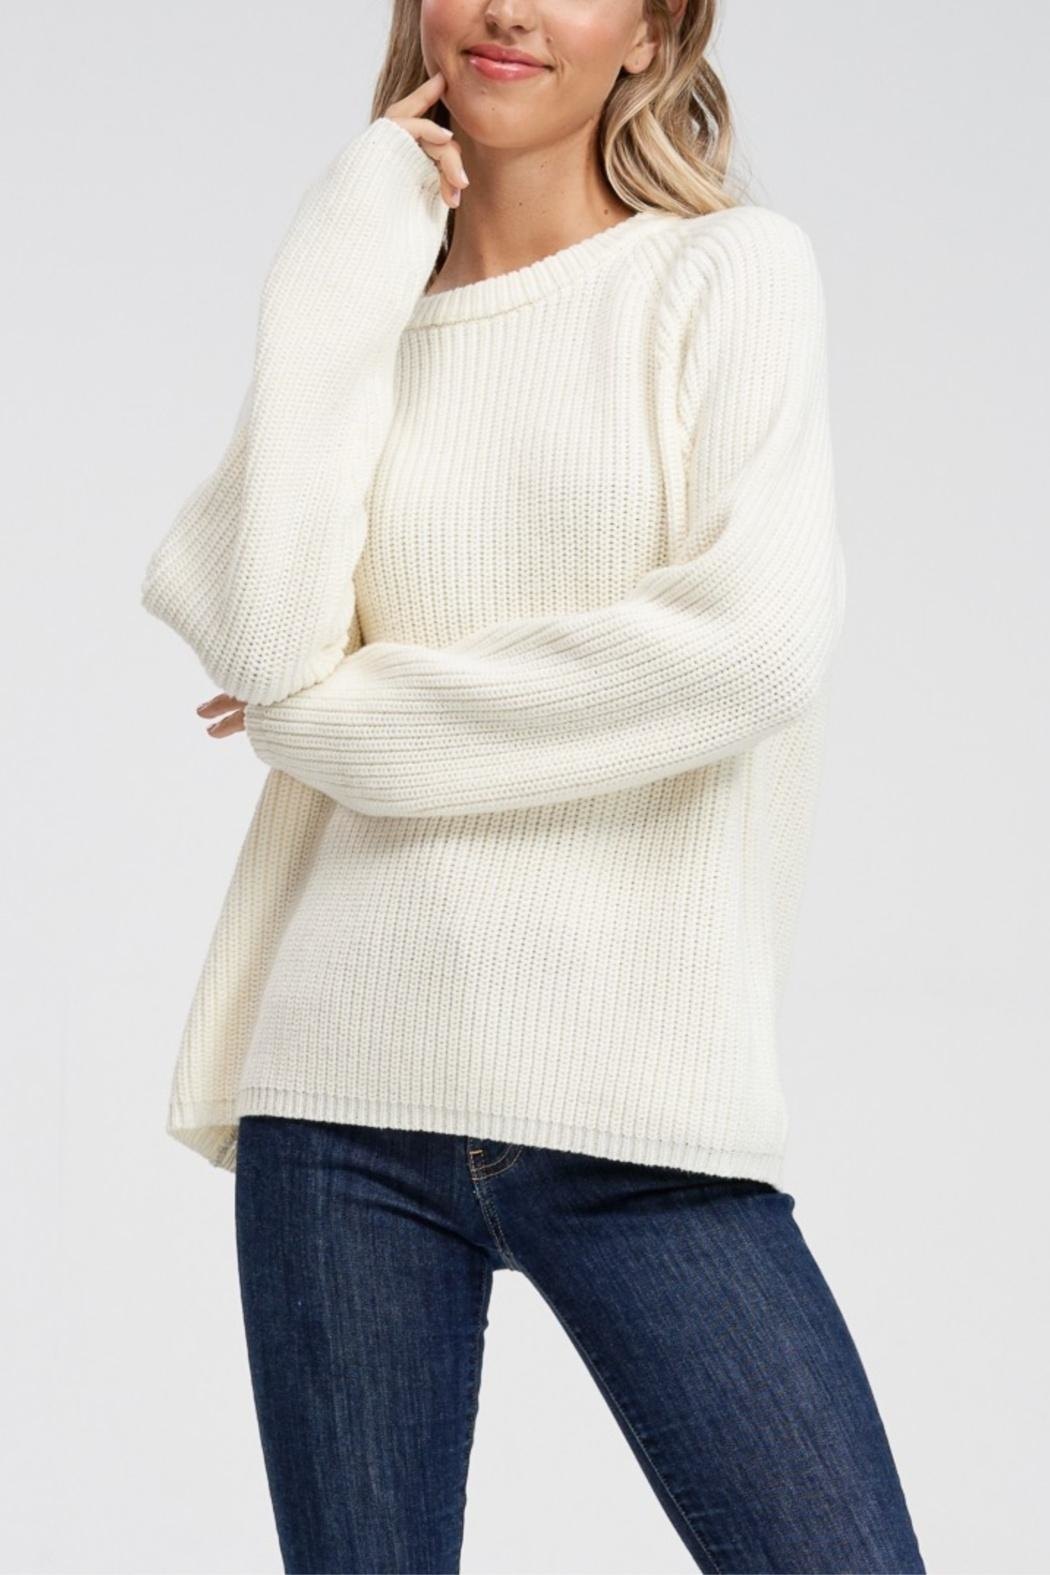 Jolie Long Sleeve Ribbed Sweater - Main Image